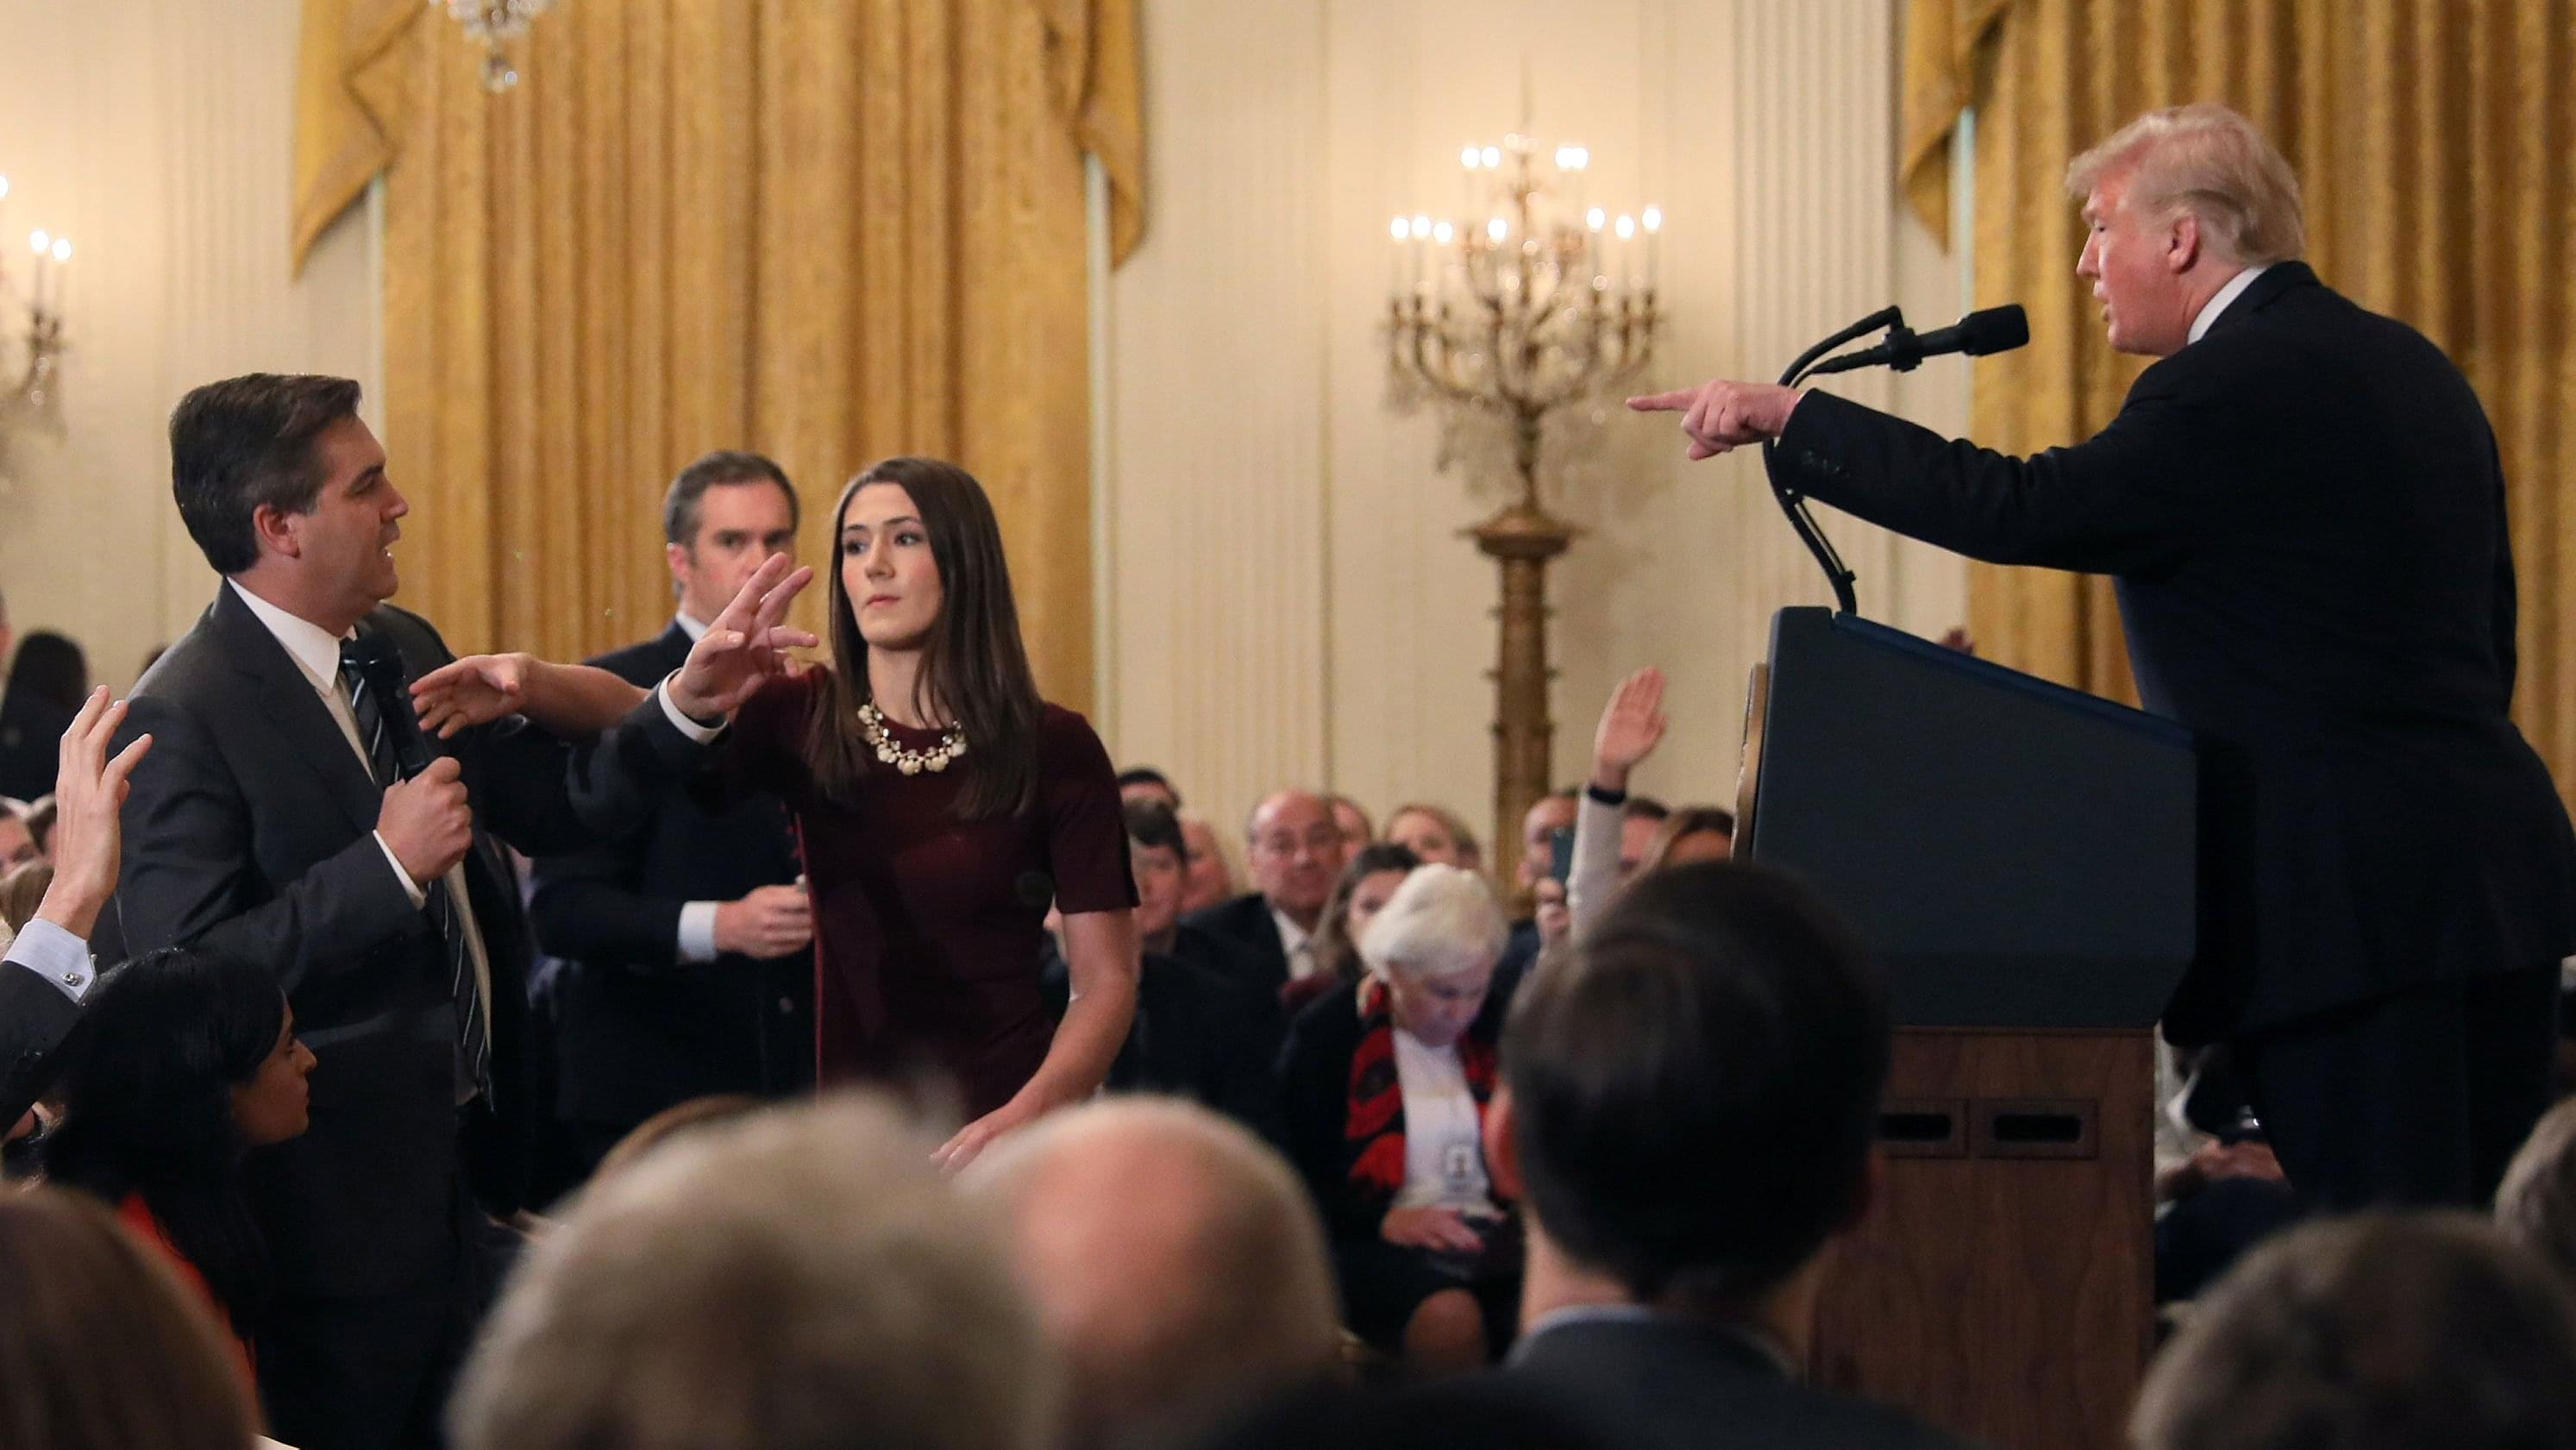 Chris Krok: Trump vs Acosta… How do we Win?